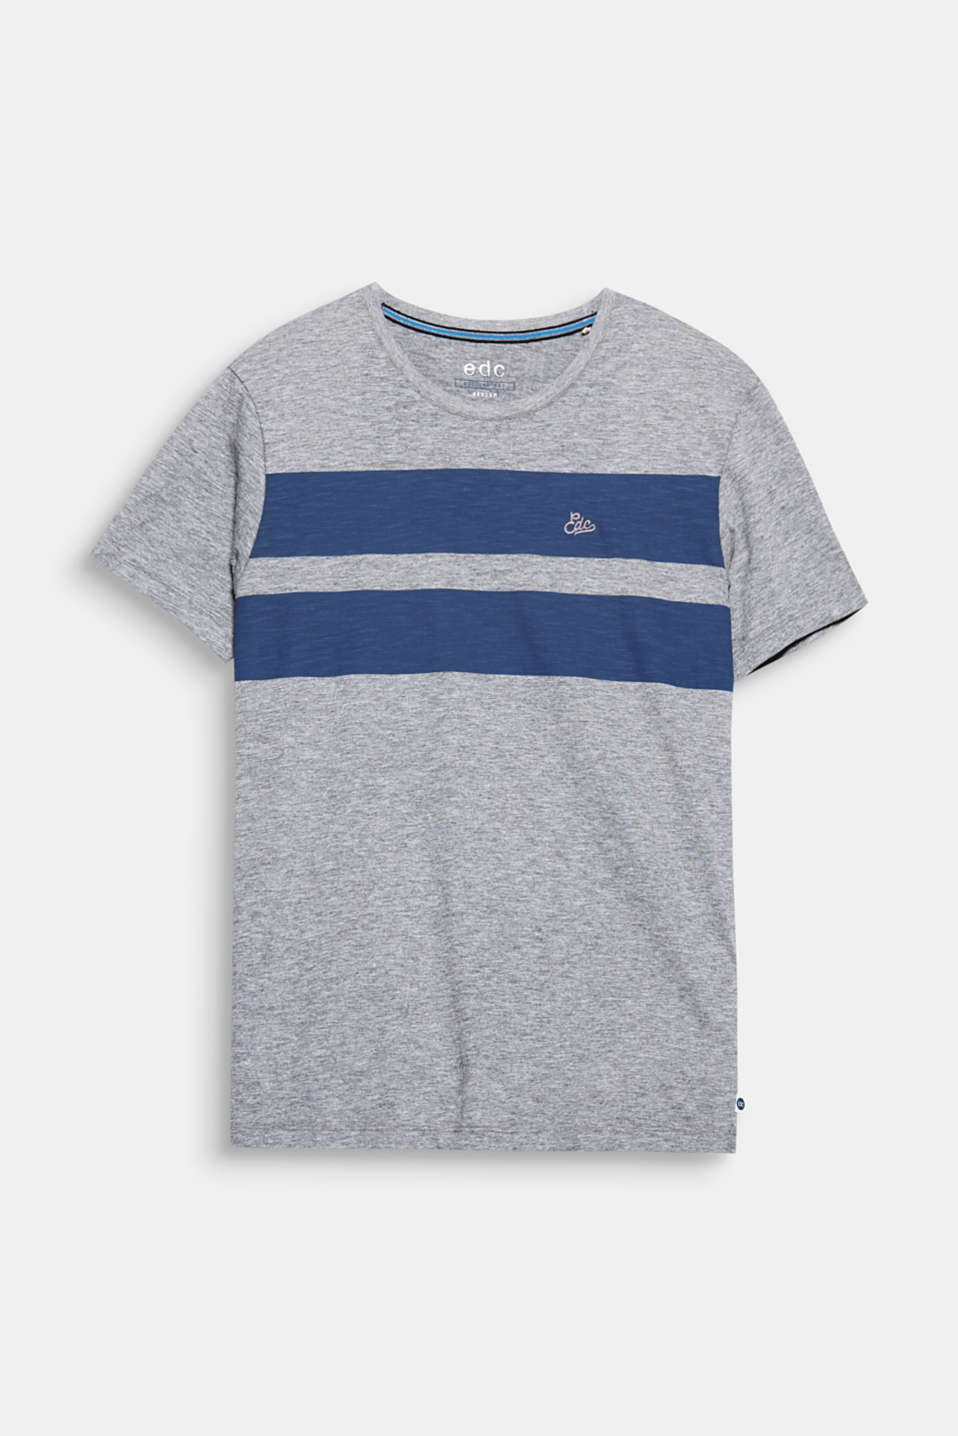 Bold block stripes give this melange slub T-shirt a cool, urban look.